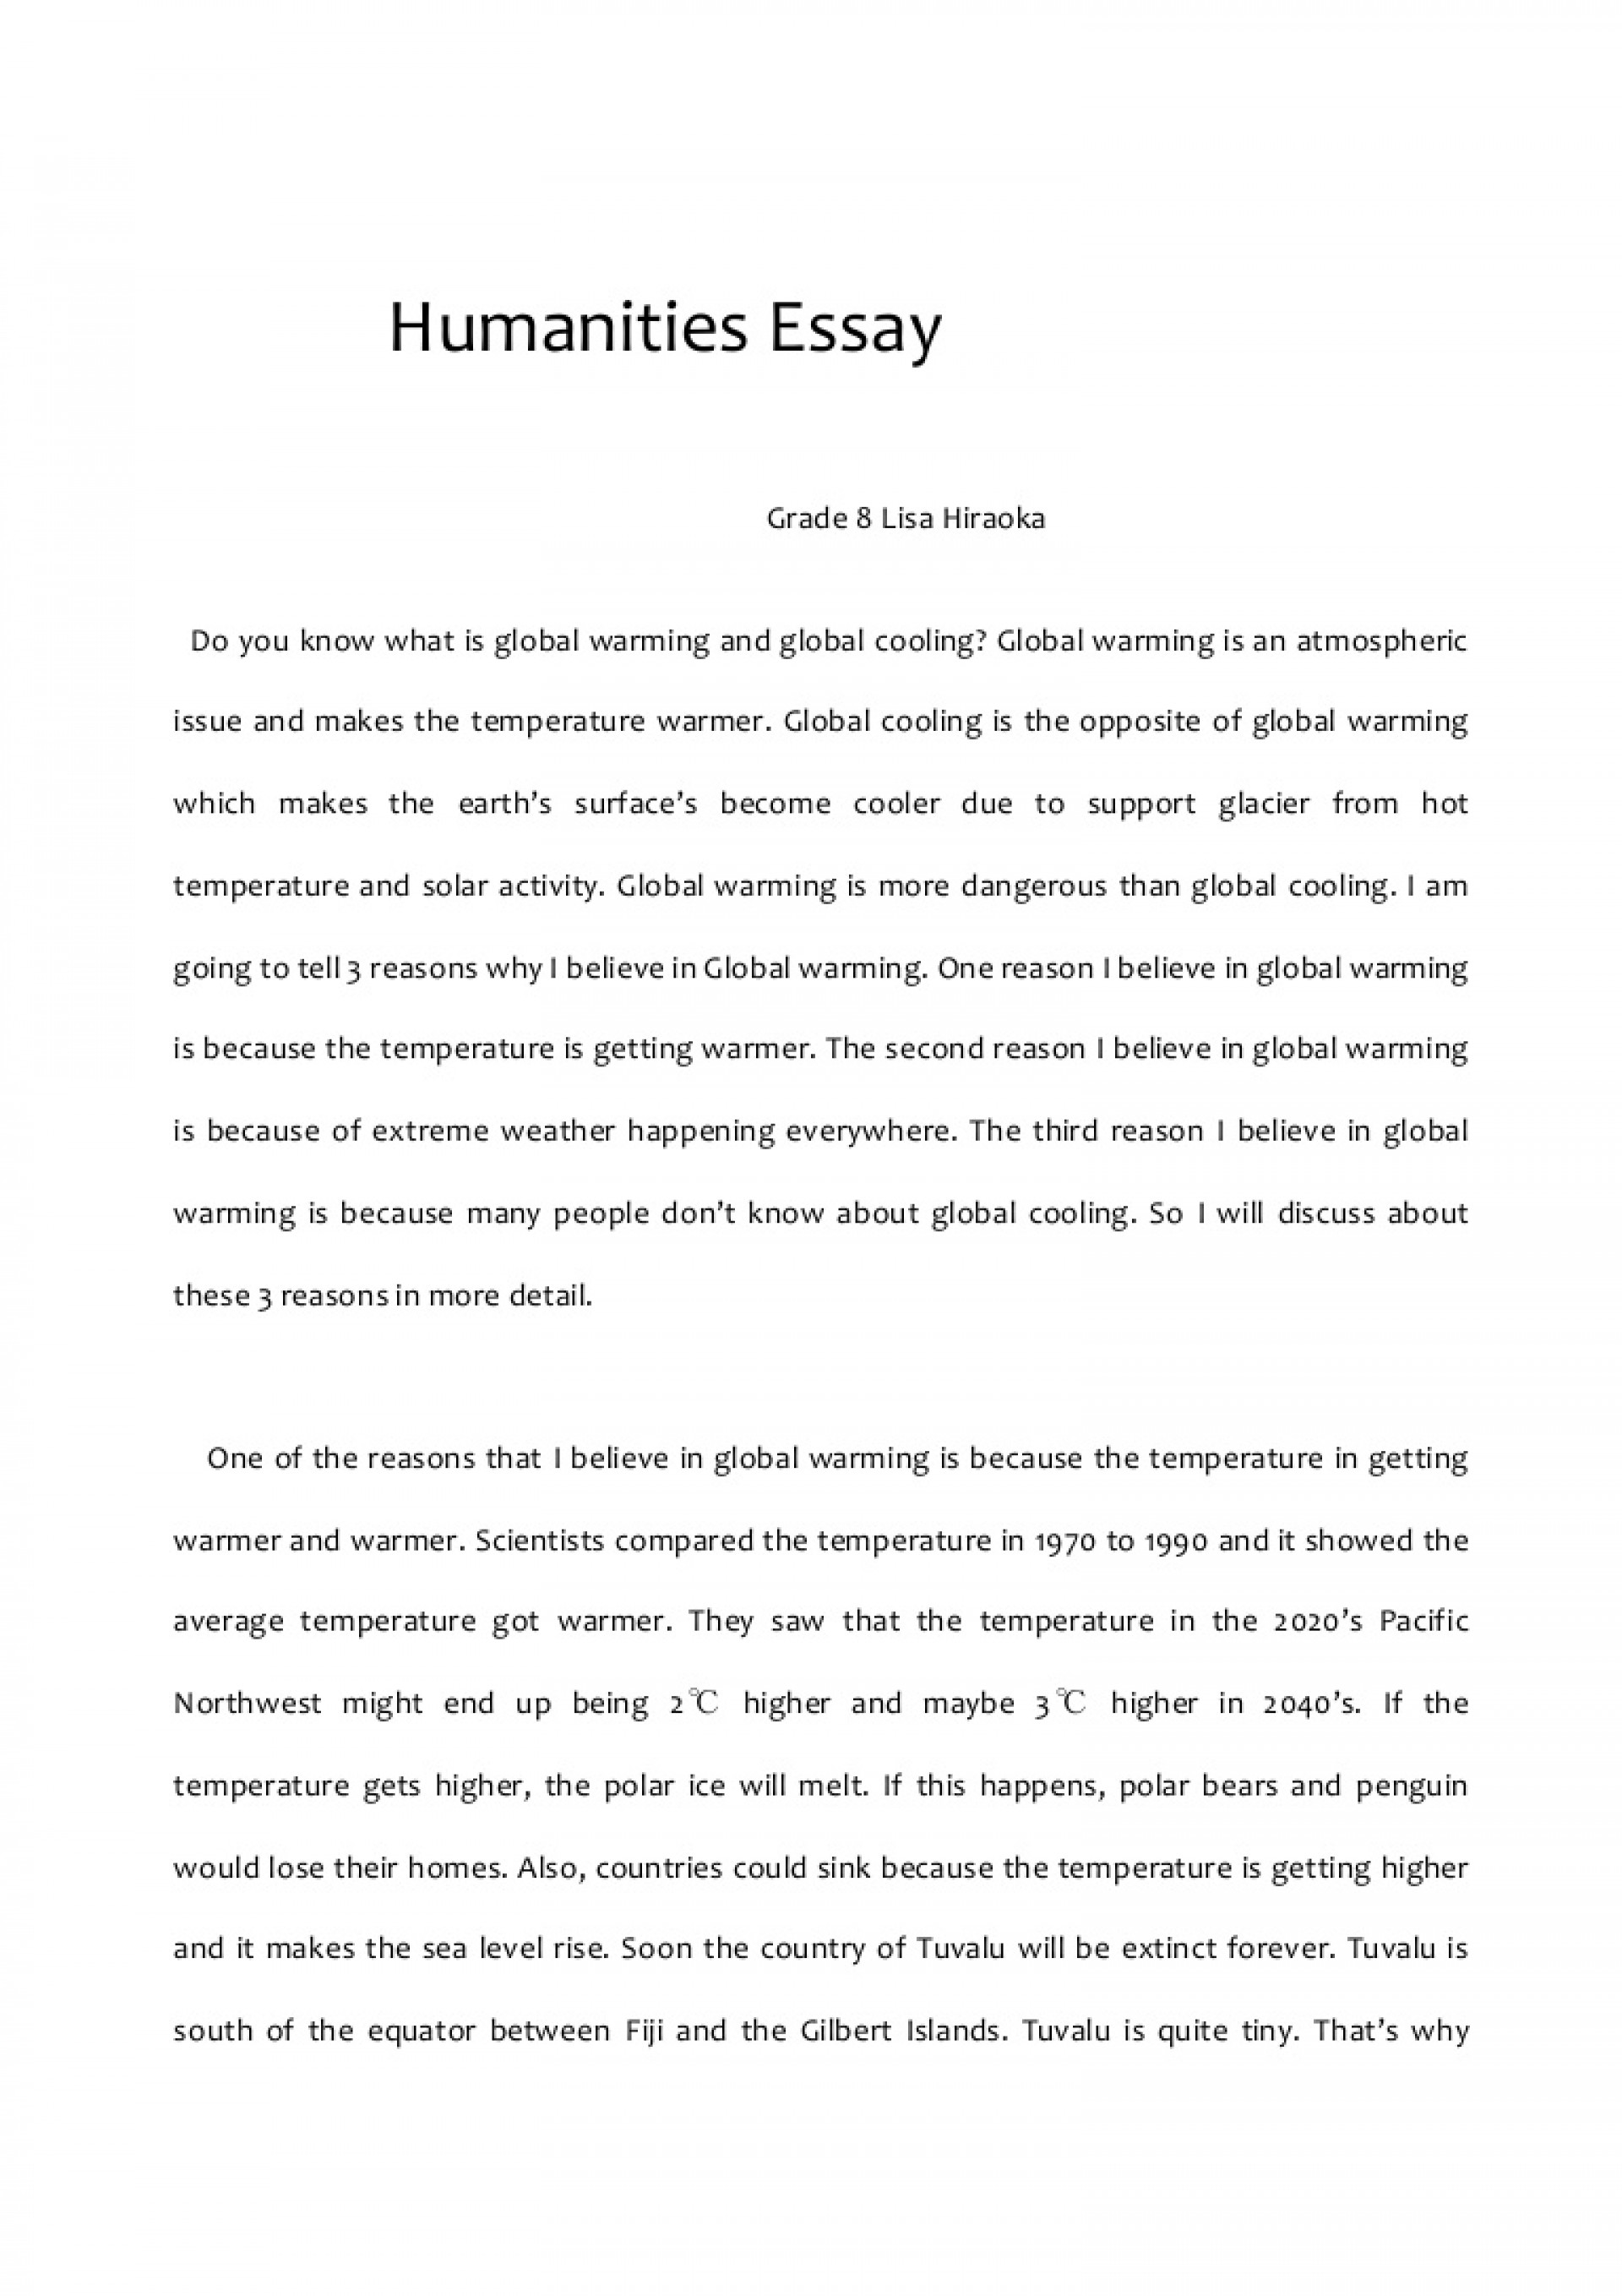 005 I Believe Essay Topics Best Narrative This Samples Humanitiesessay Phpapp02 Thumbn Good Template Example Stupendous Examples Npr College 1920